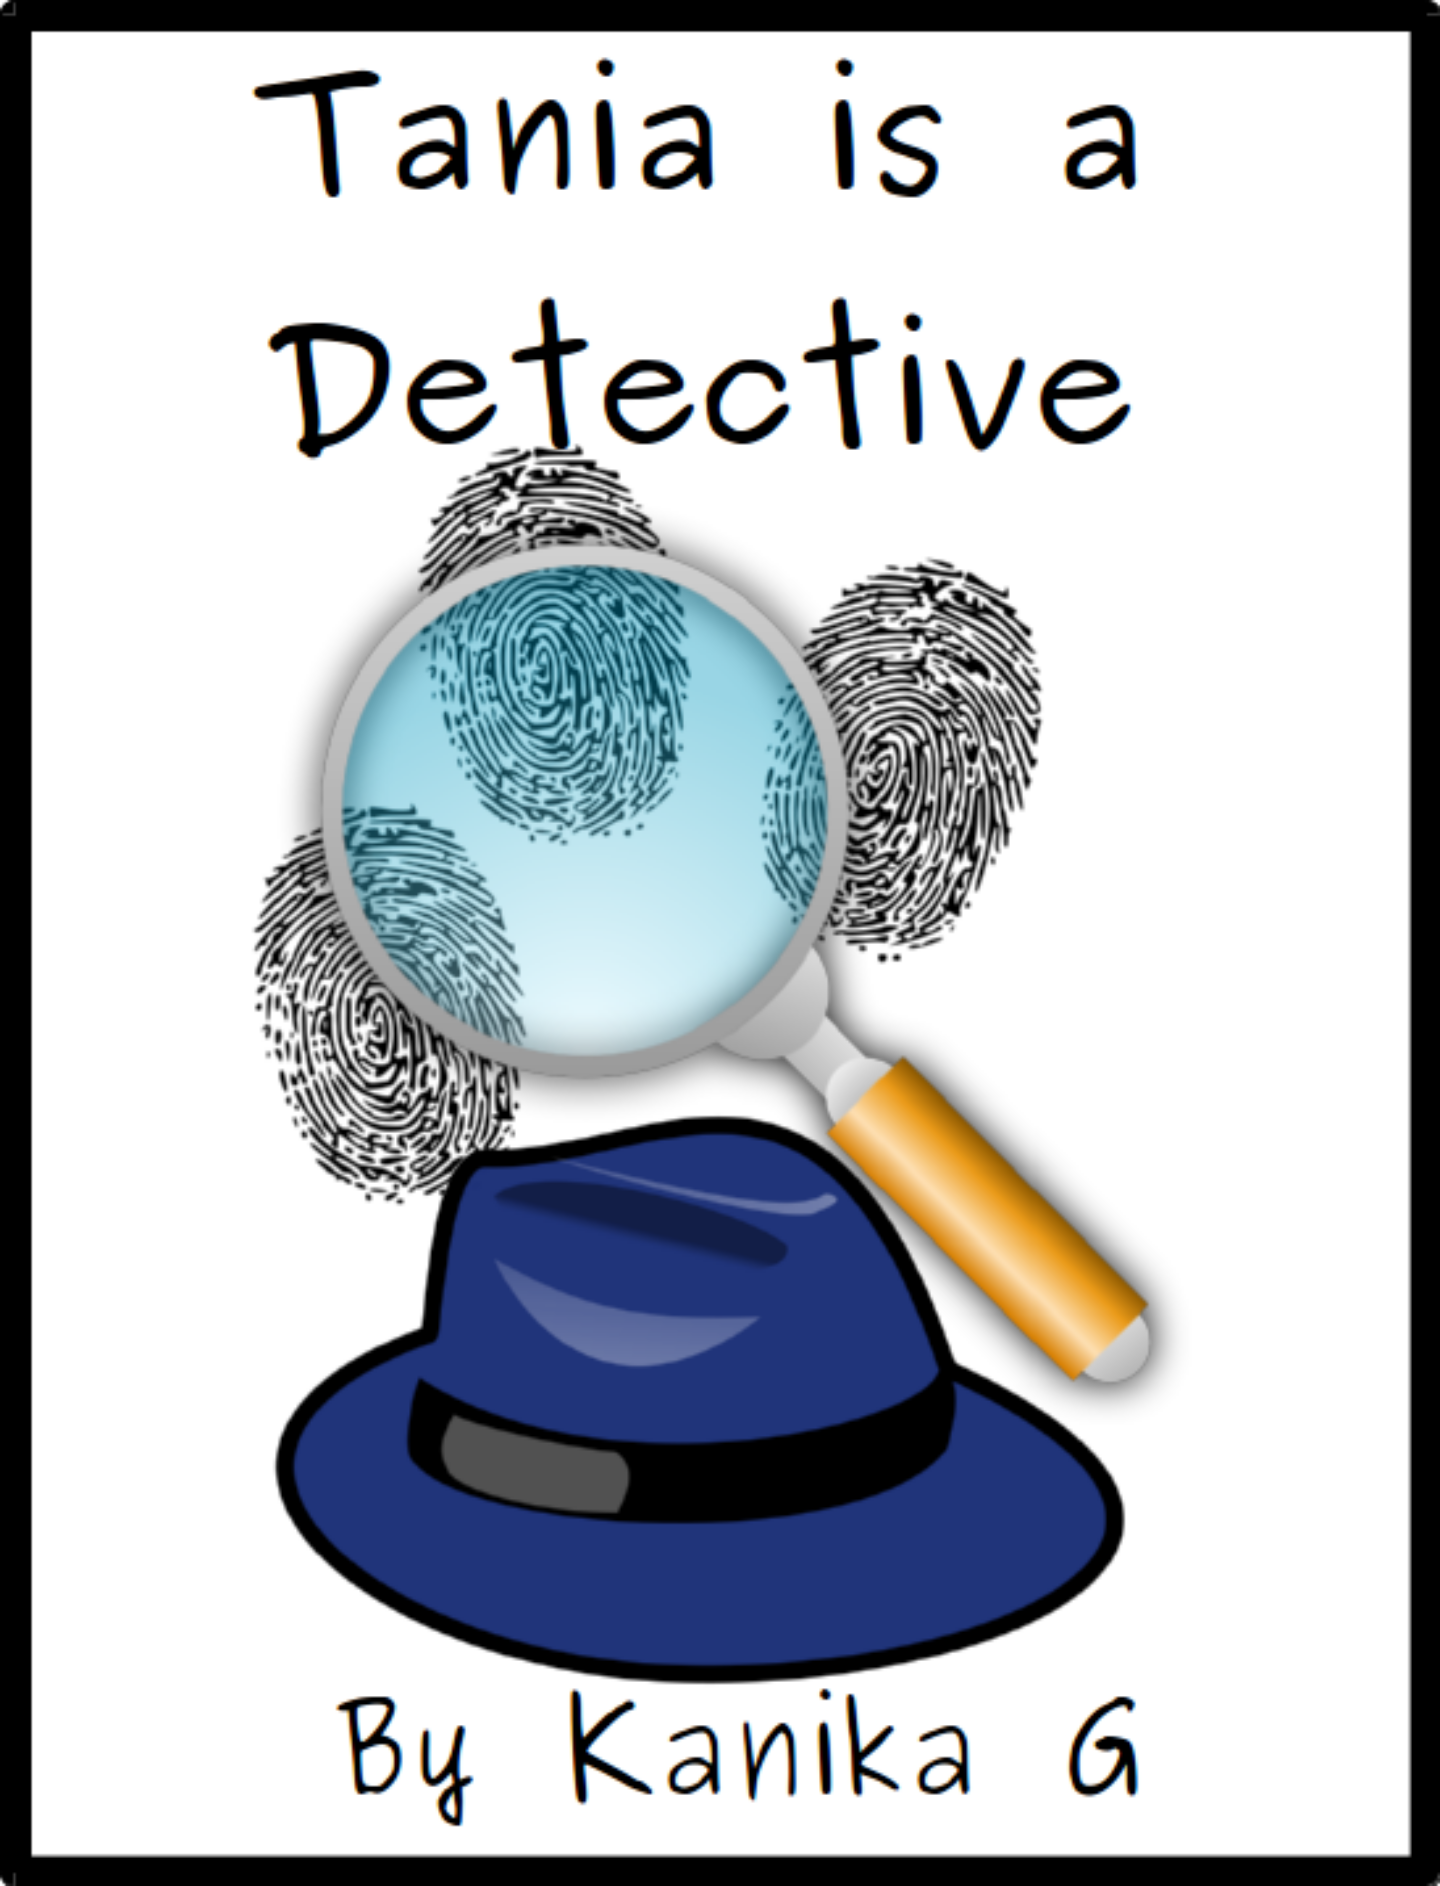 Tania is a Detective by G, Kanika